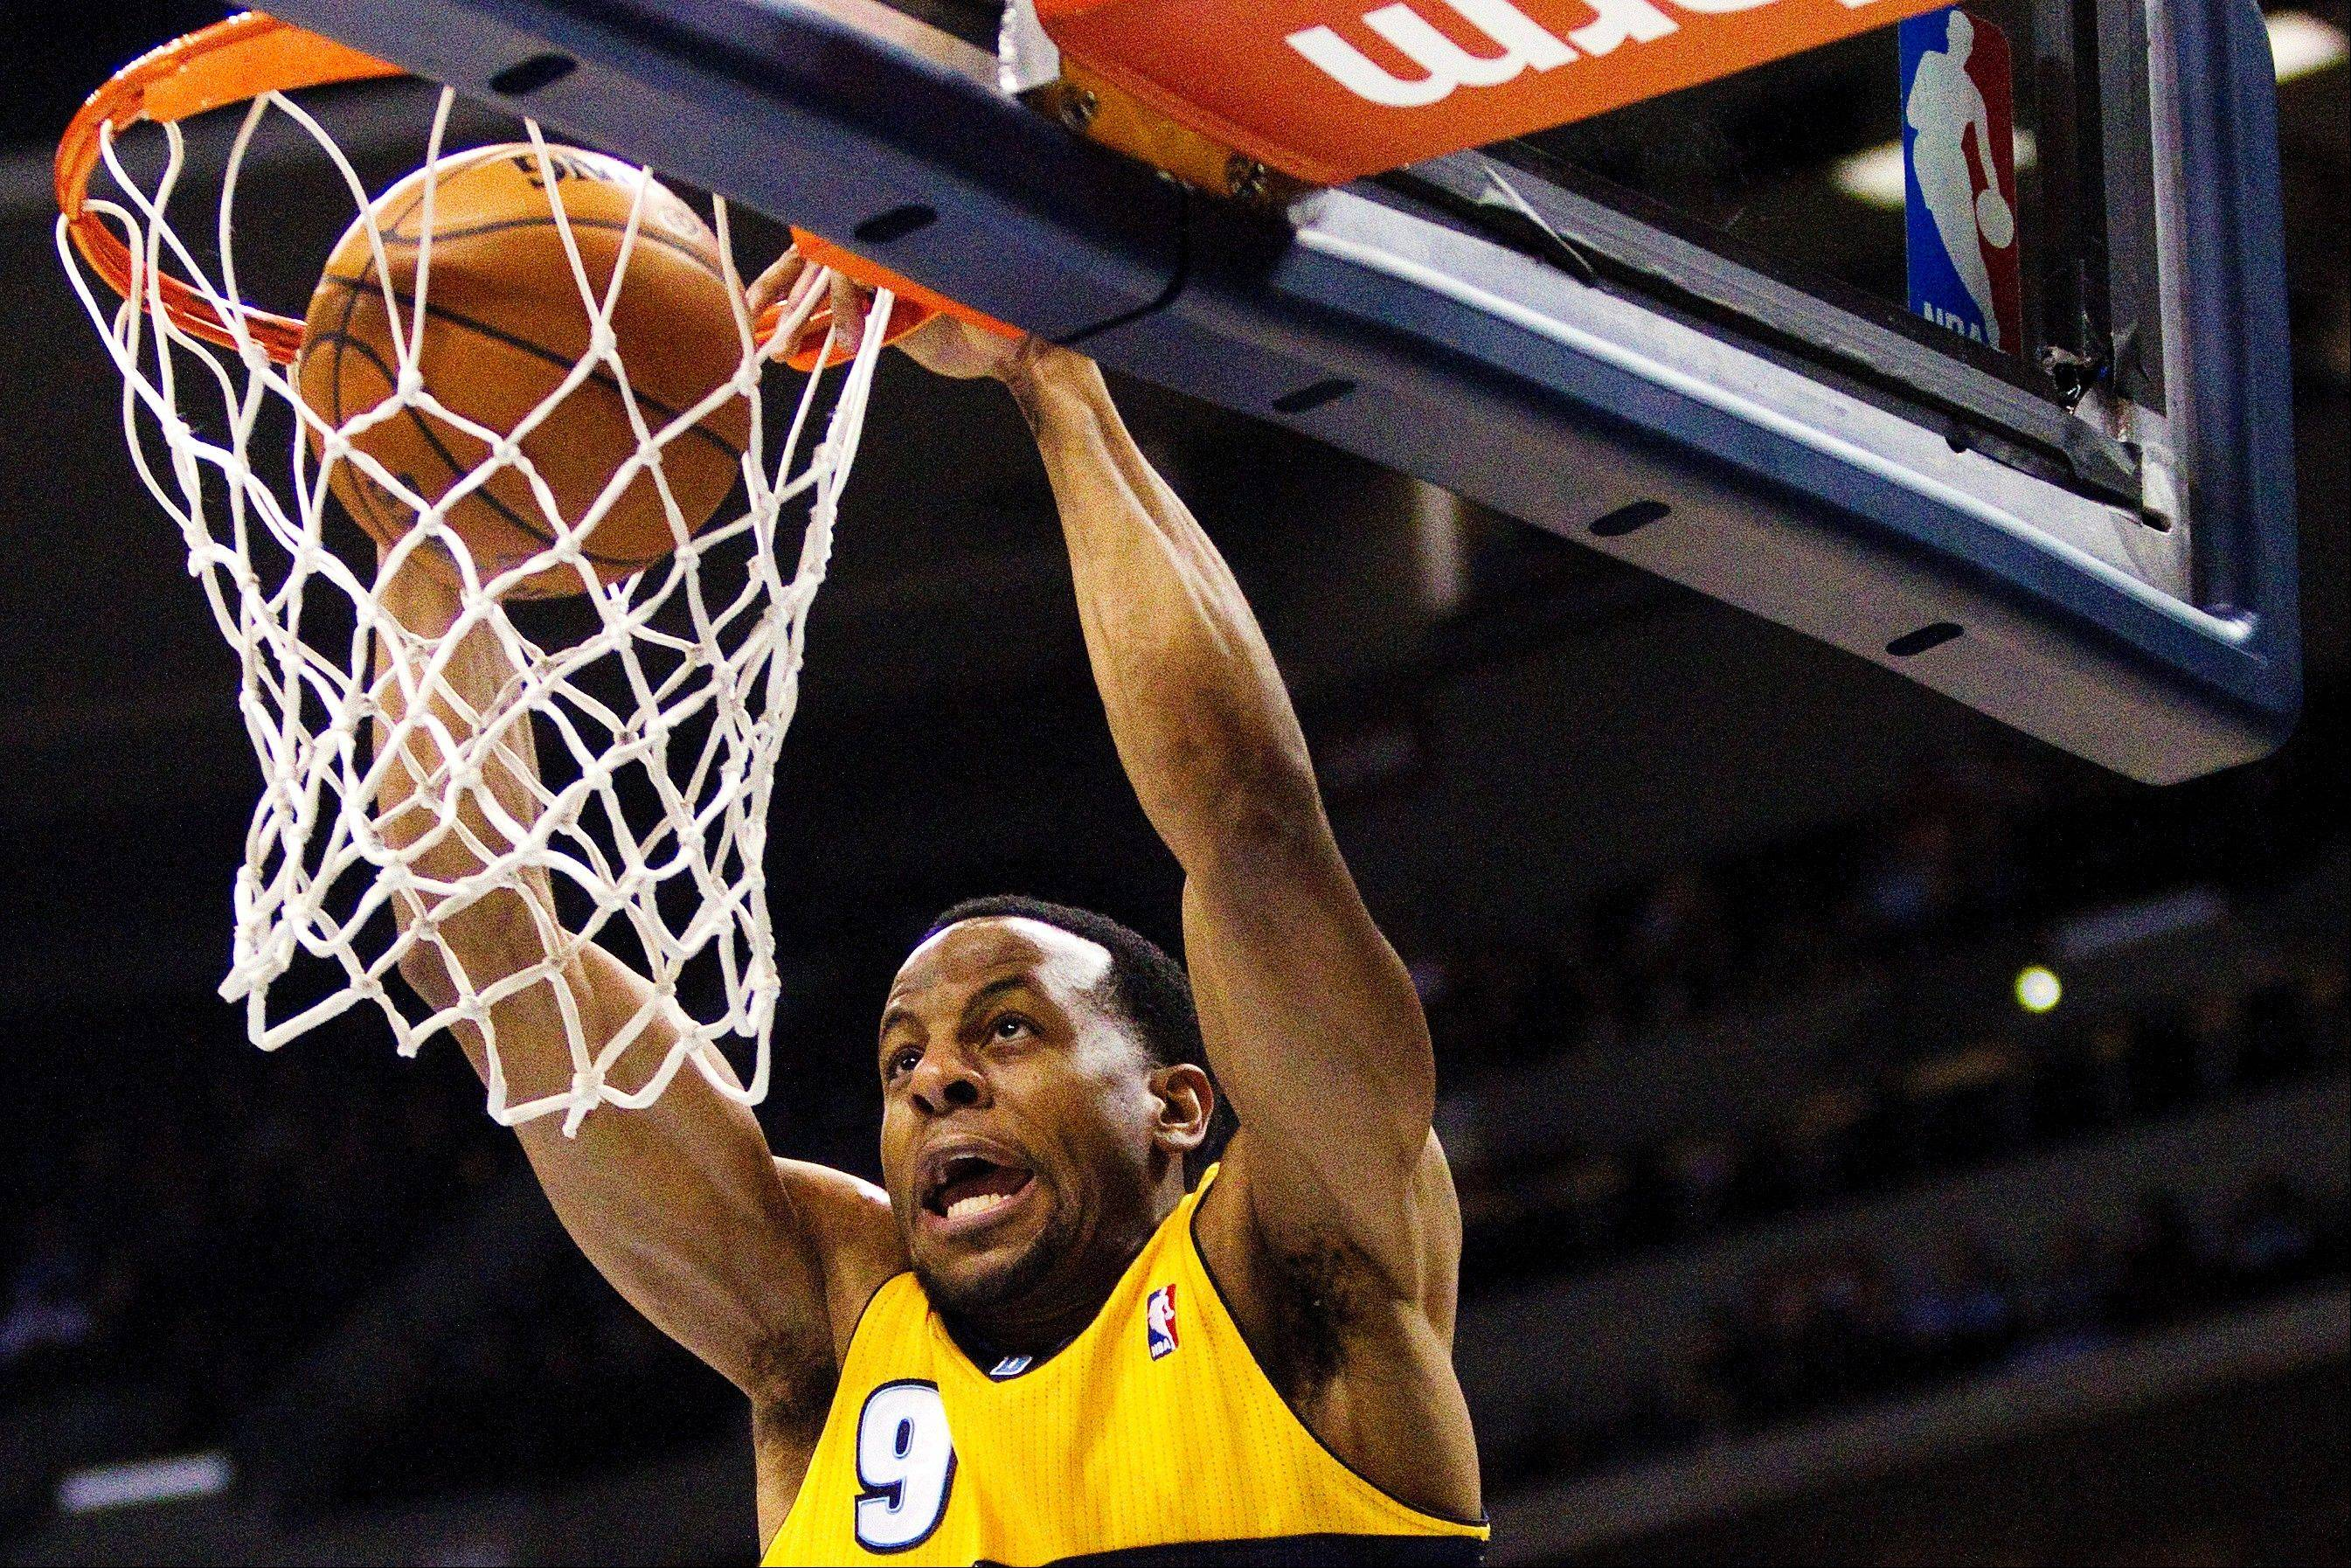 Denver Nuggets� Andre Iguodala (9) dunks off an alley-oop during the first quarter of an NBA basketball game against the Orlando Magic on Wednesday in Denver.